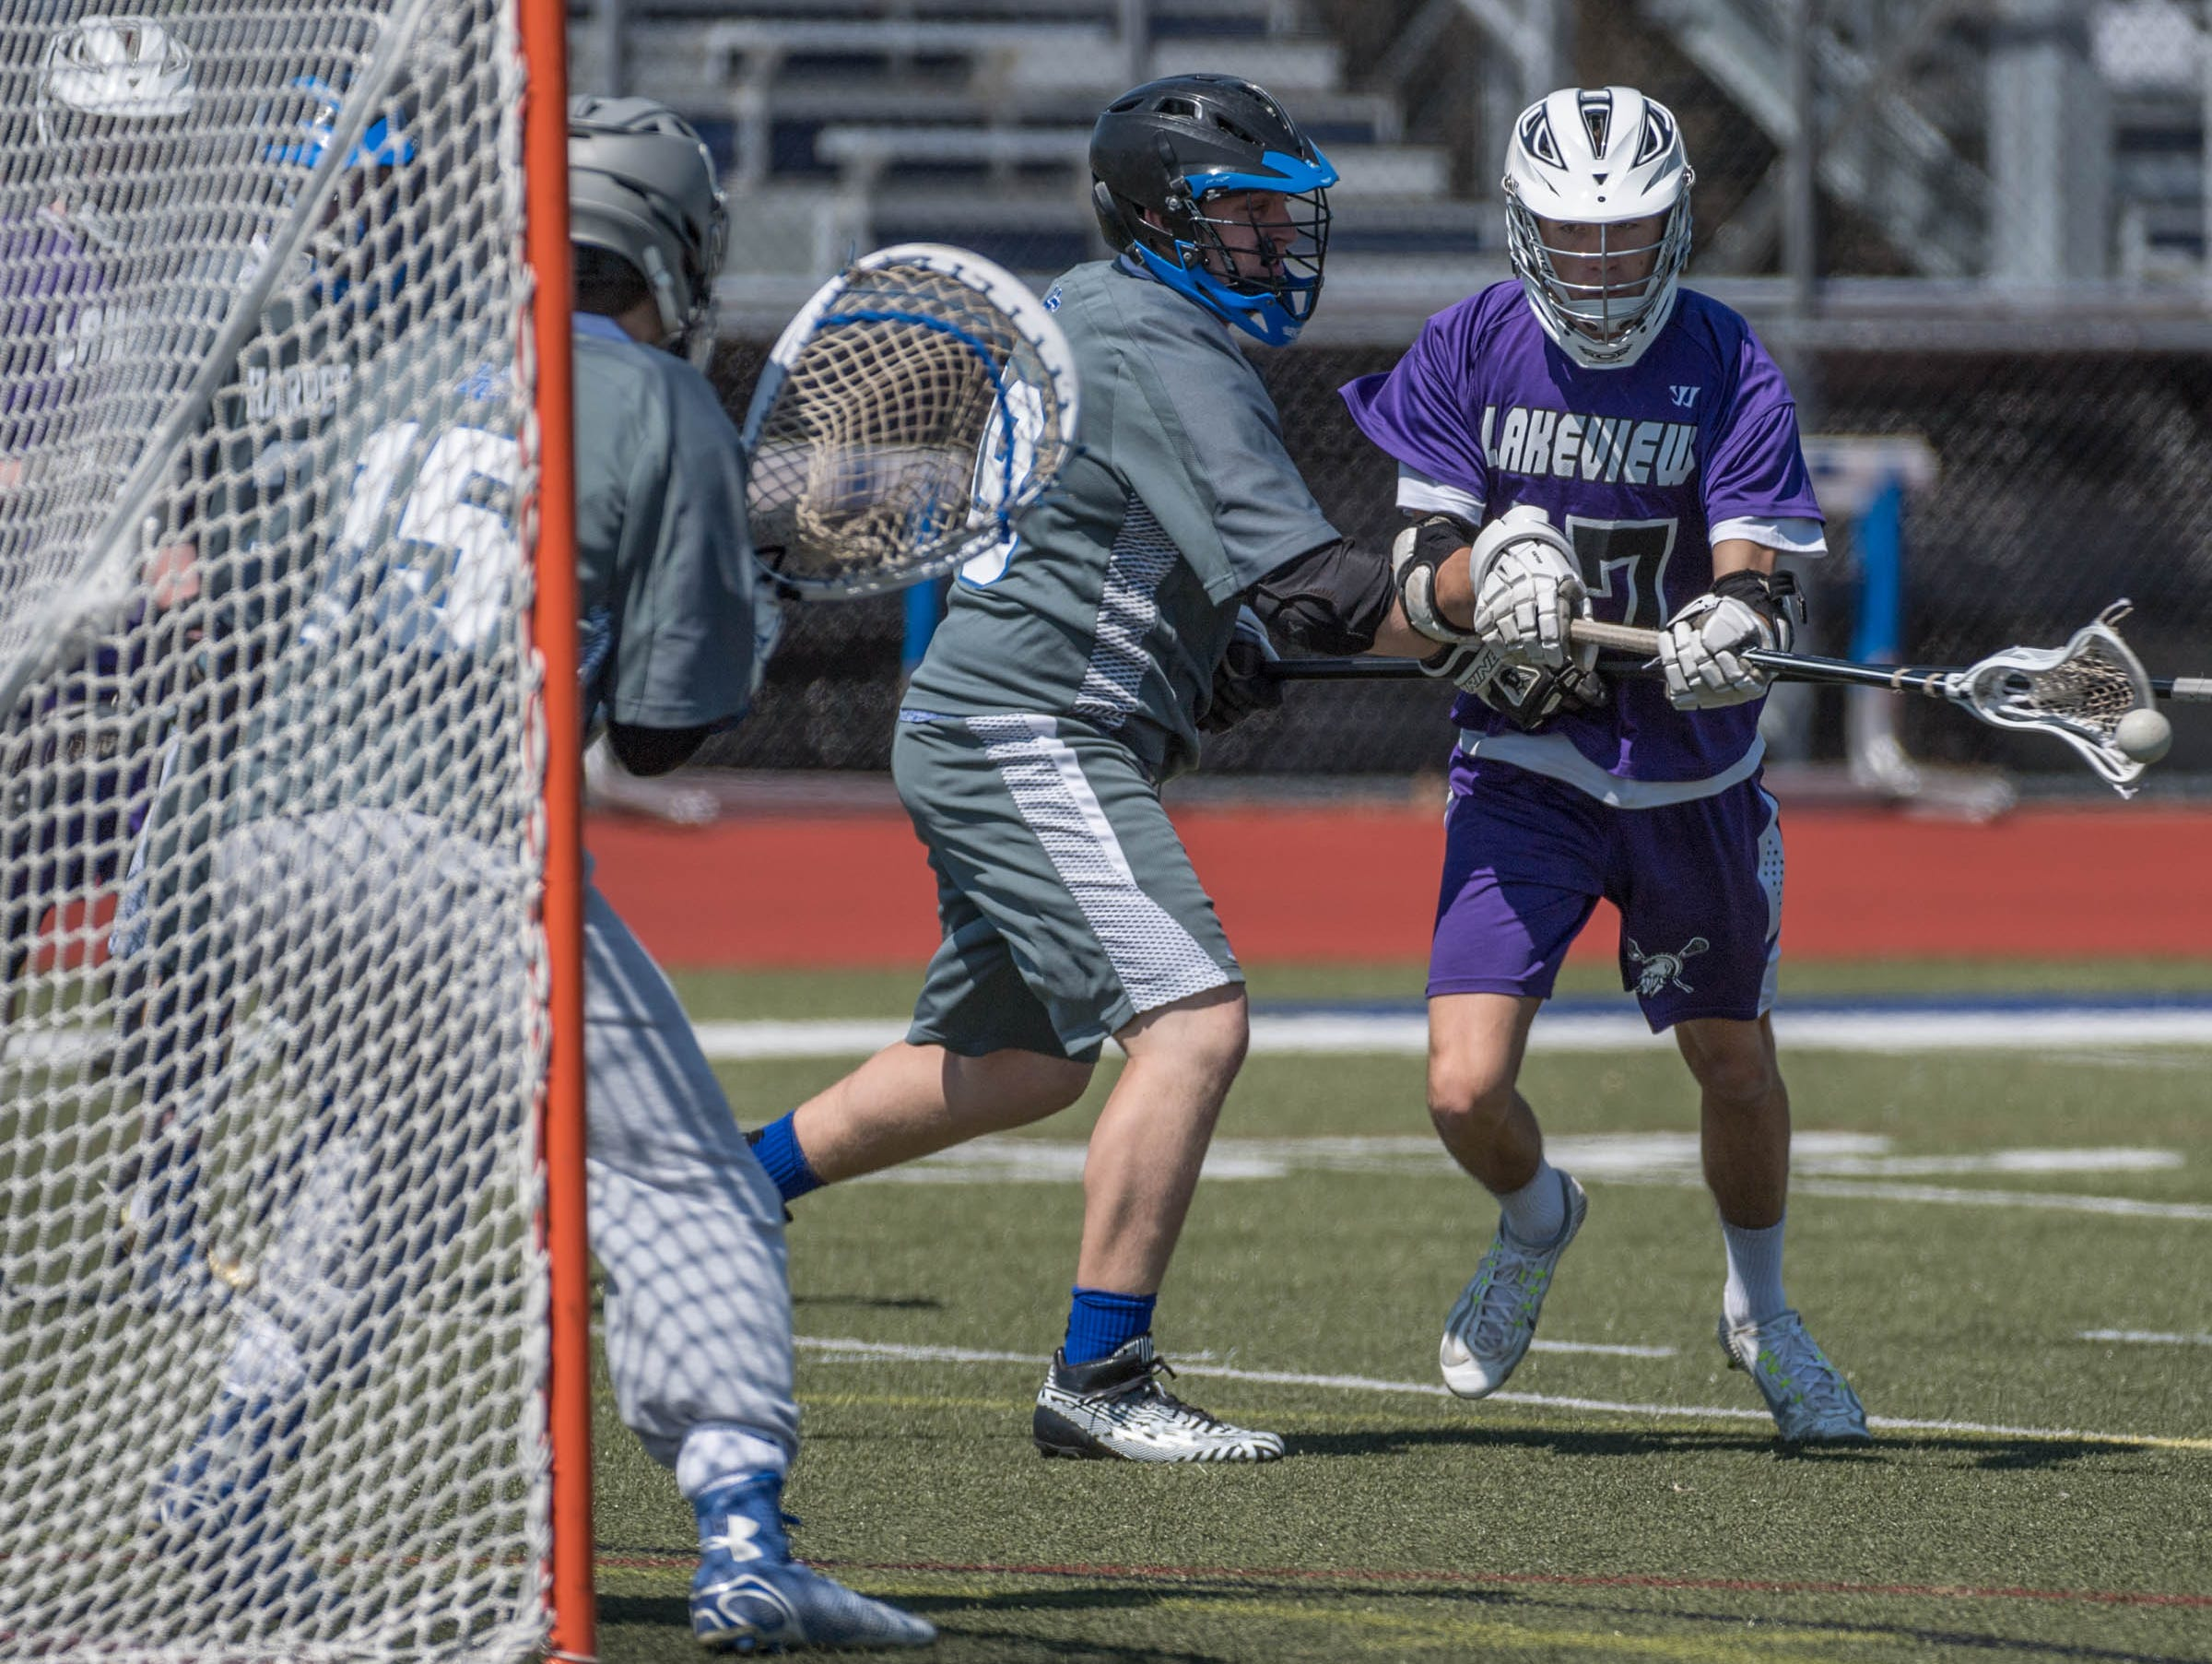 Lakeview's Peyton Perry (17) takes a shot on goal against Harper Creek in the All City Lacrosse Tournament on Saturday.